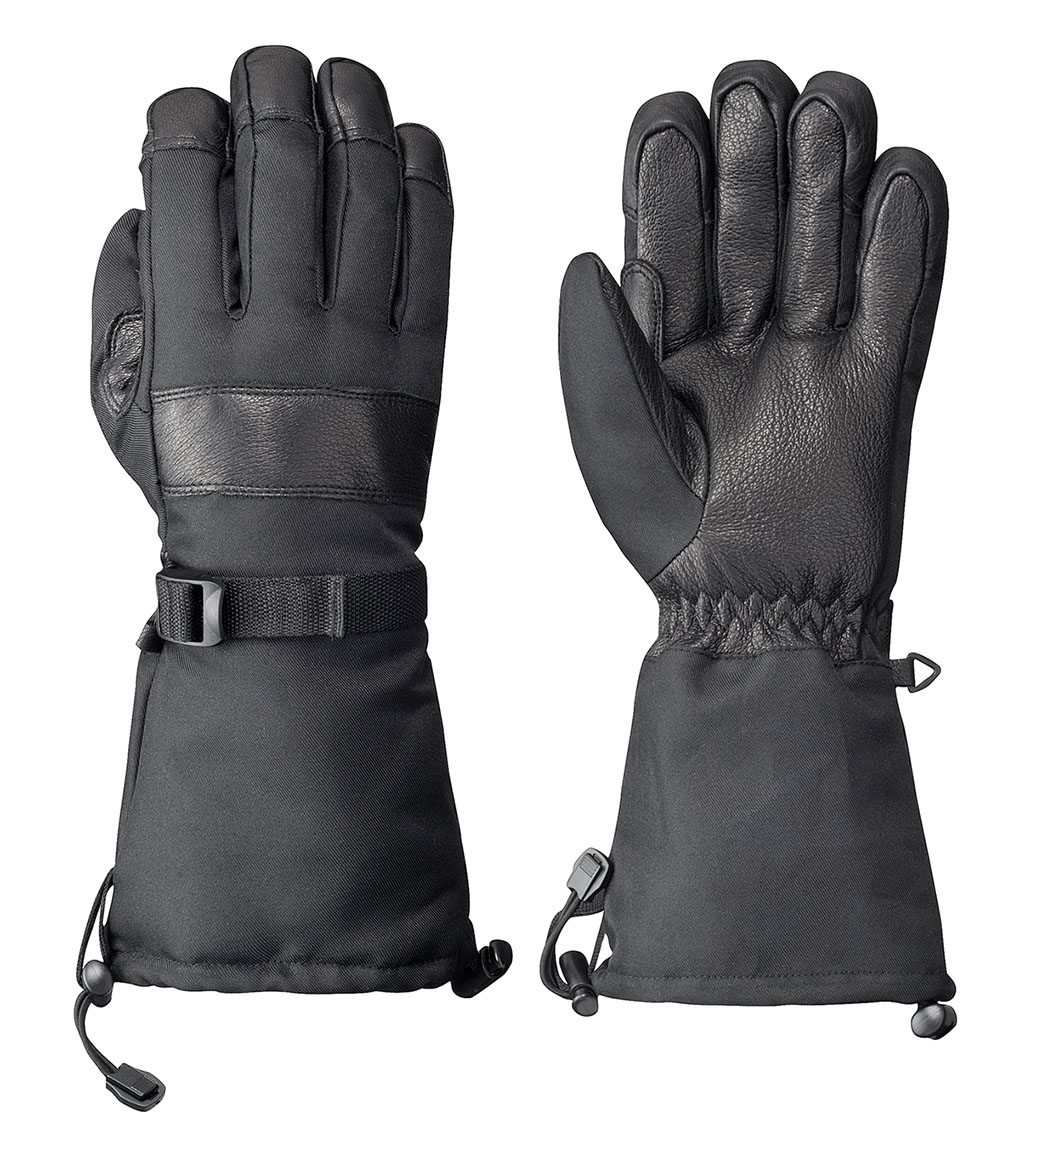 leather-Gloves Best 10 Ideas for Choosing Winter Gifts